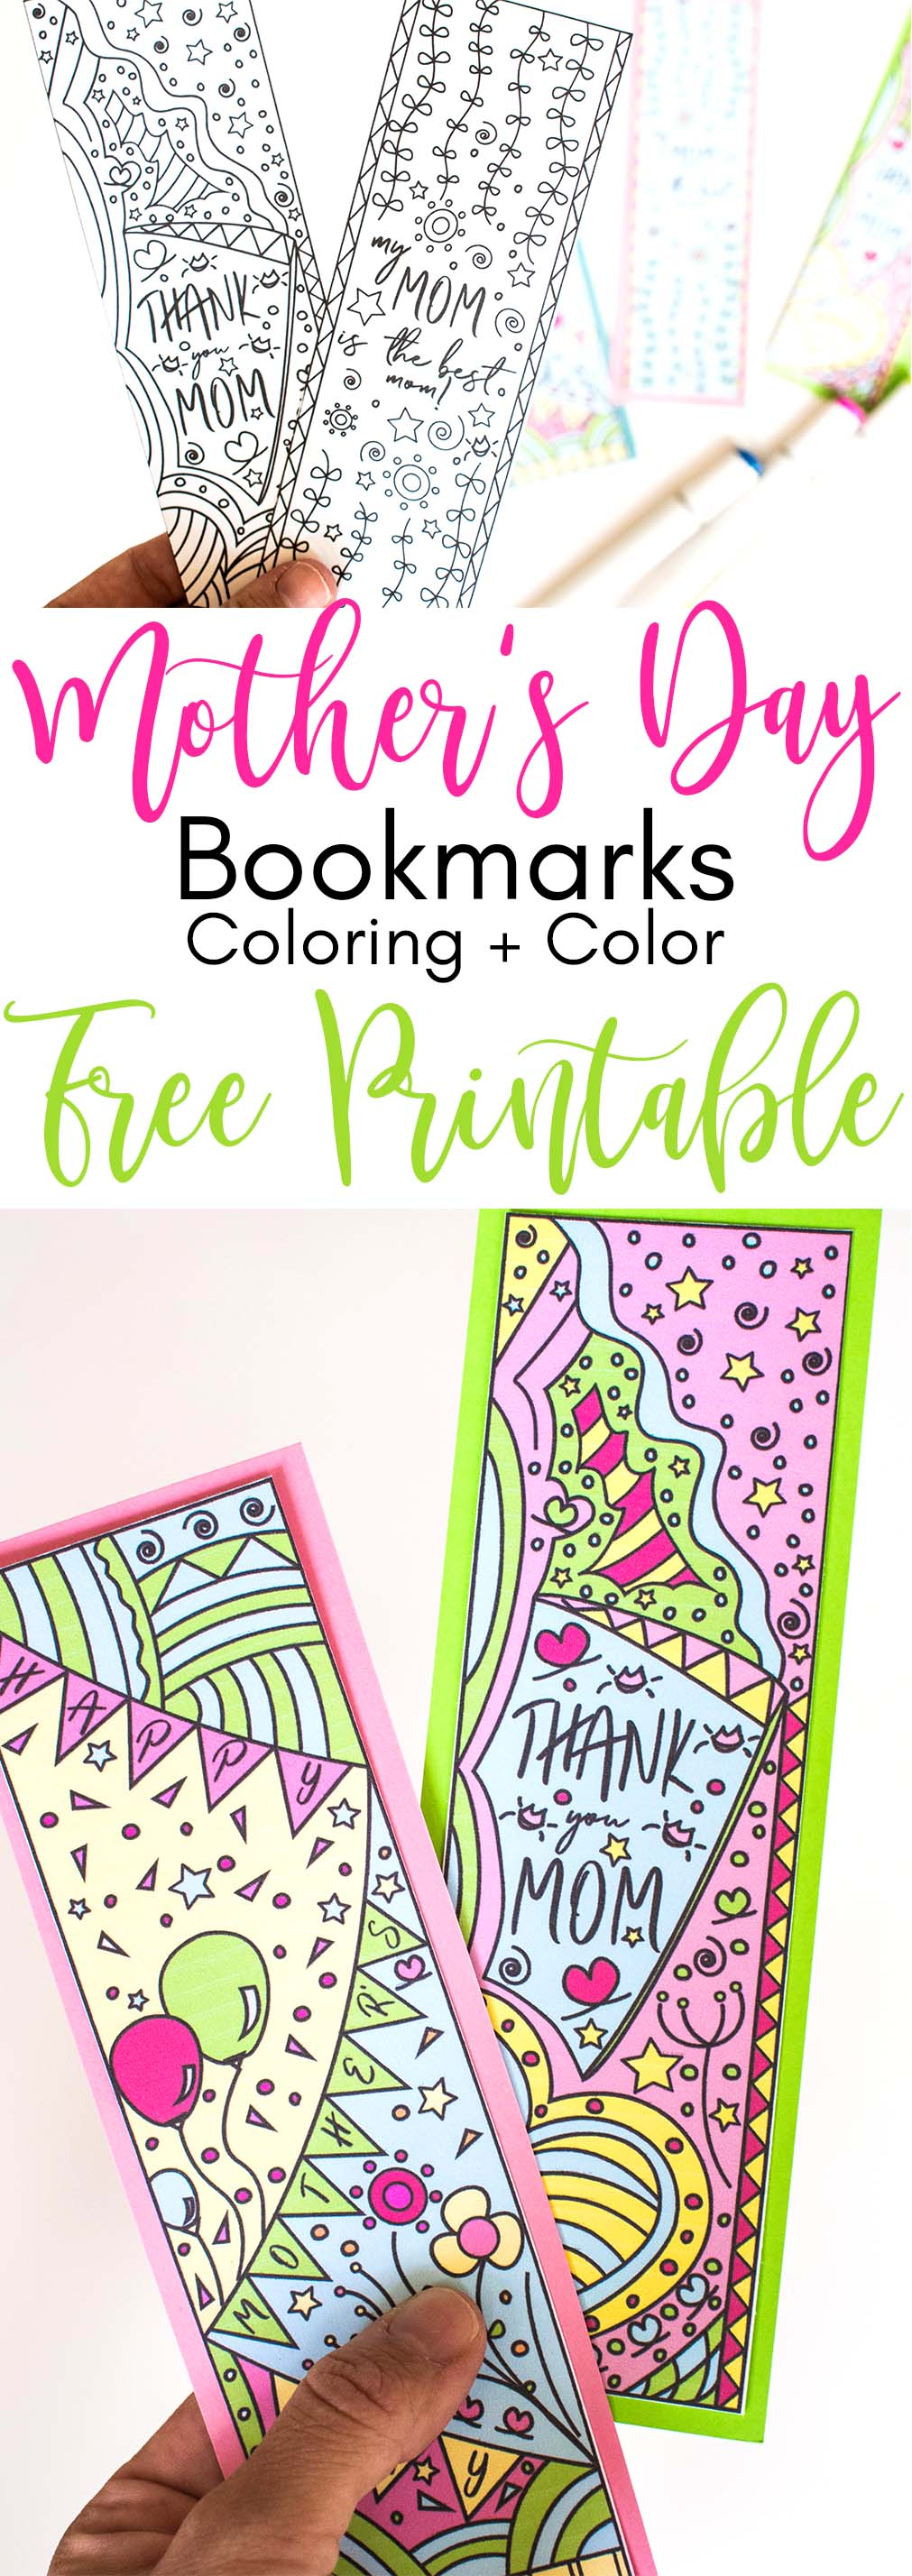 image regarding Mother's Day Bookmarks Printable Free identified as Coloring Moms Working day Bookmarks Free of charge Printable